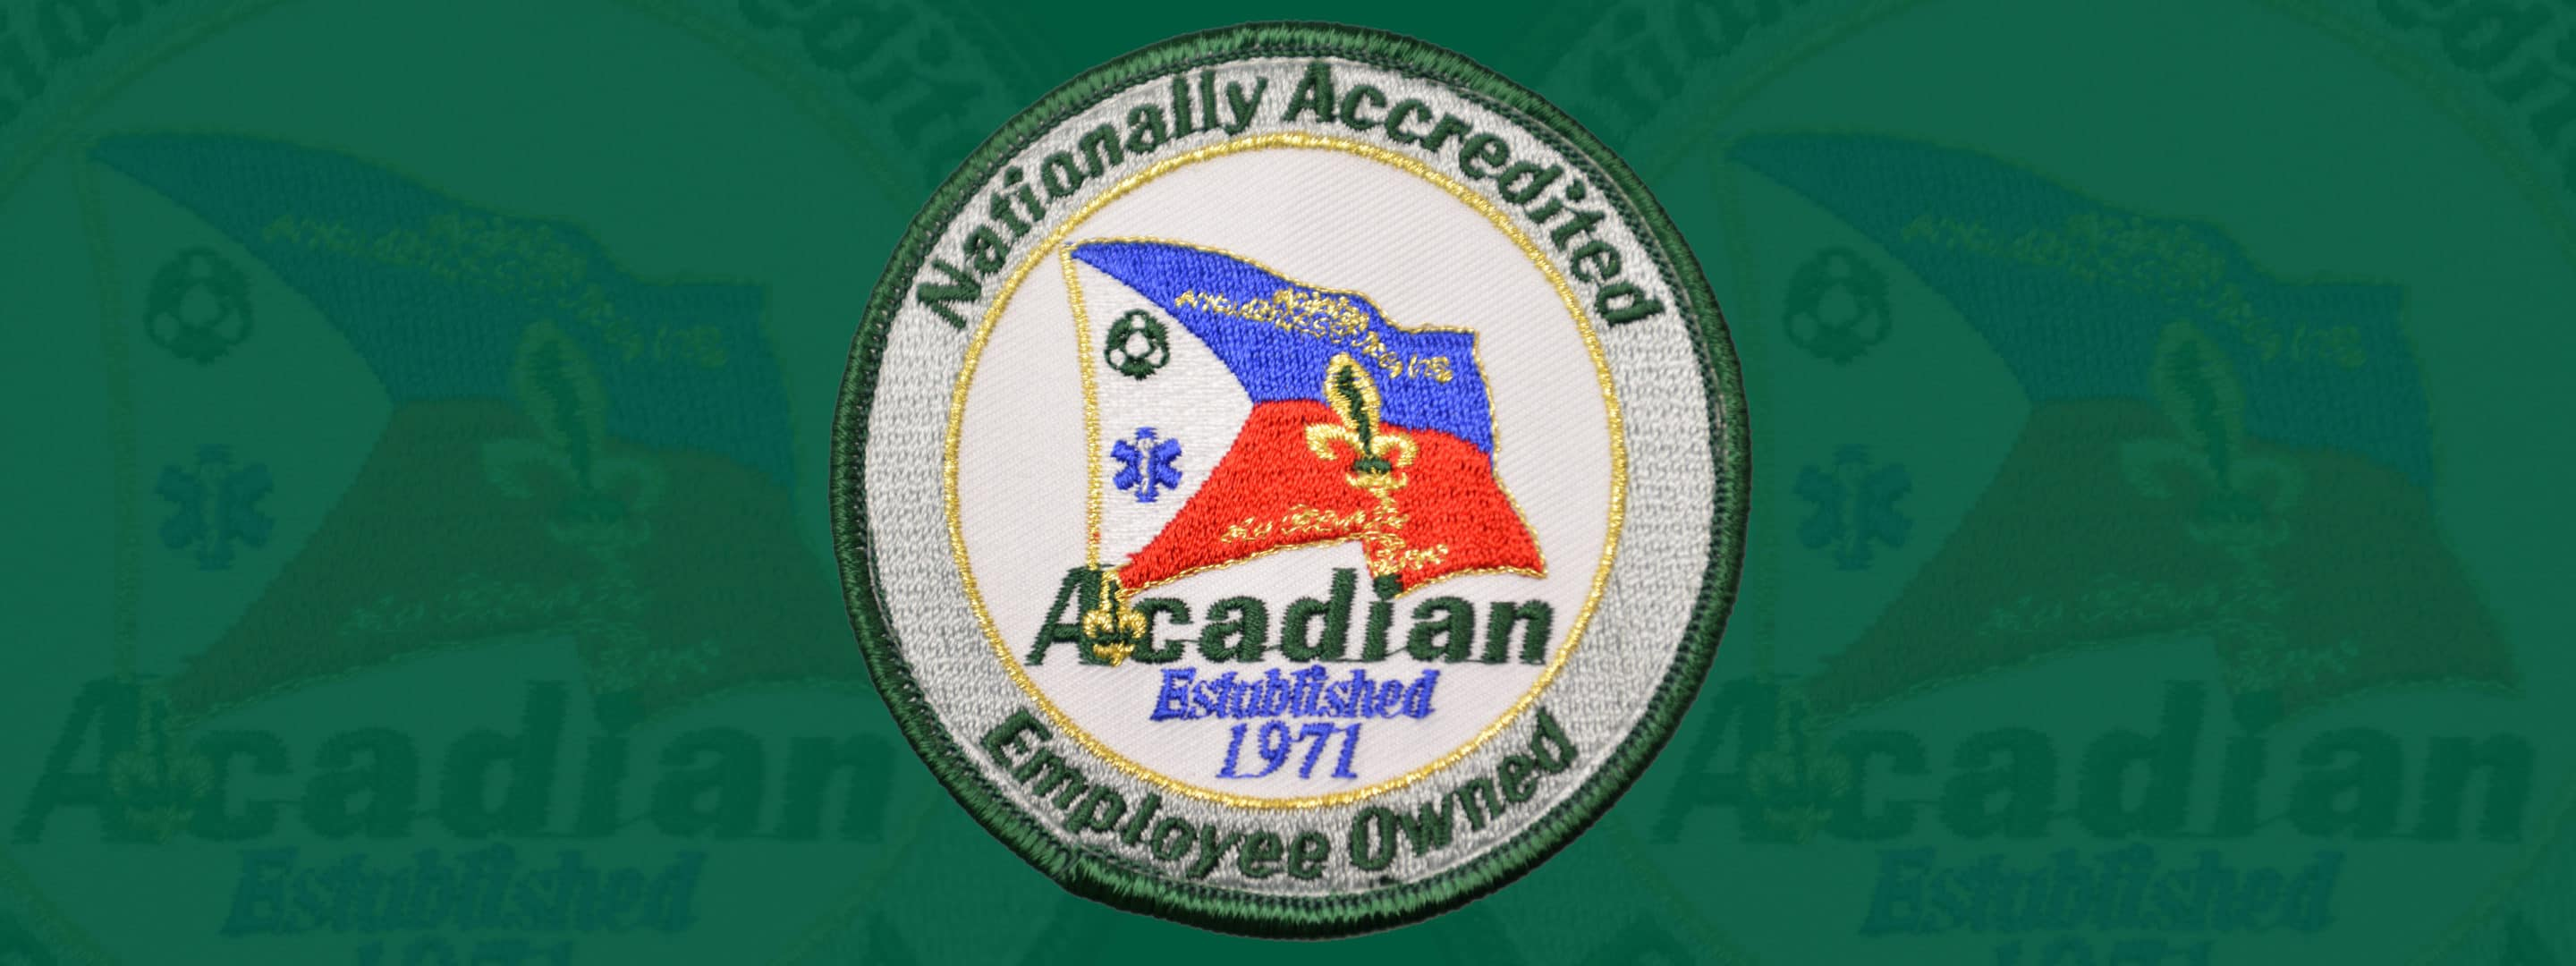 Acadian Podcasts